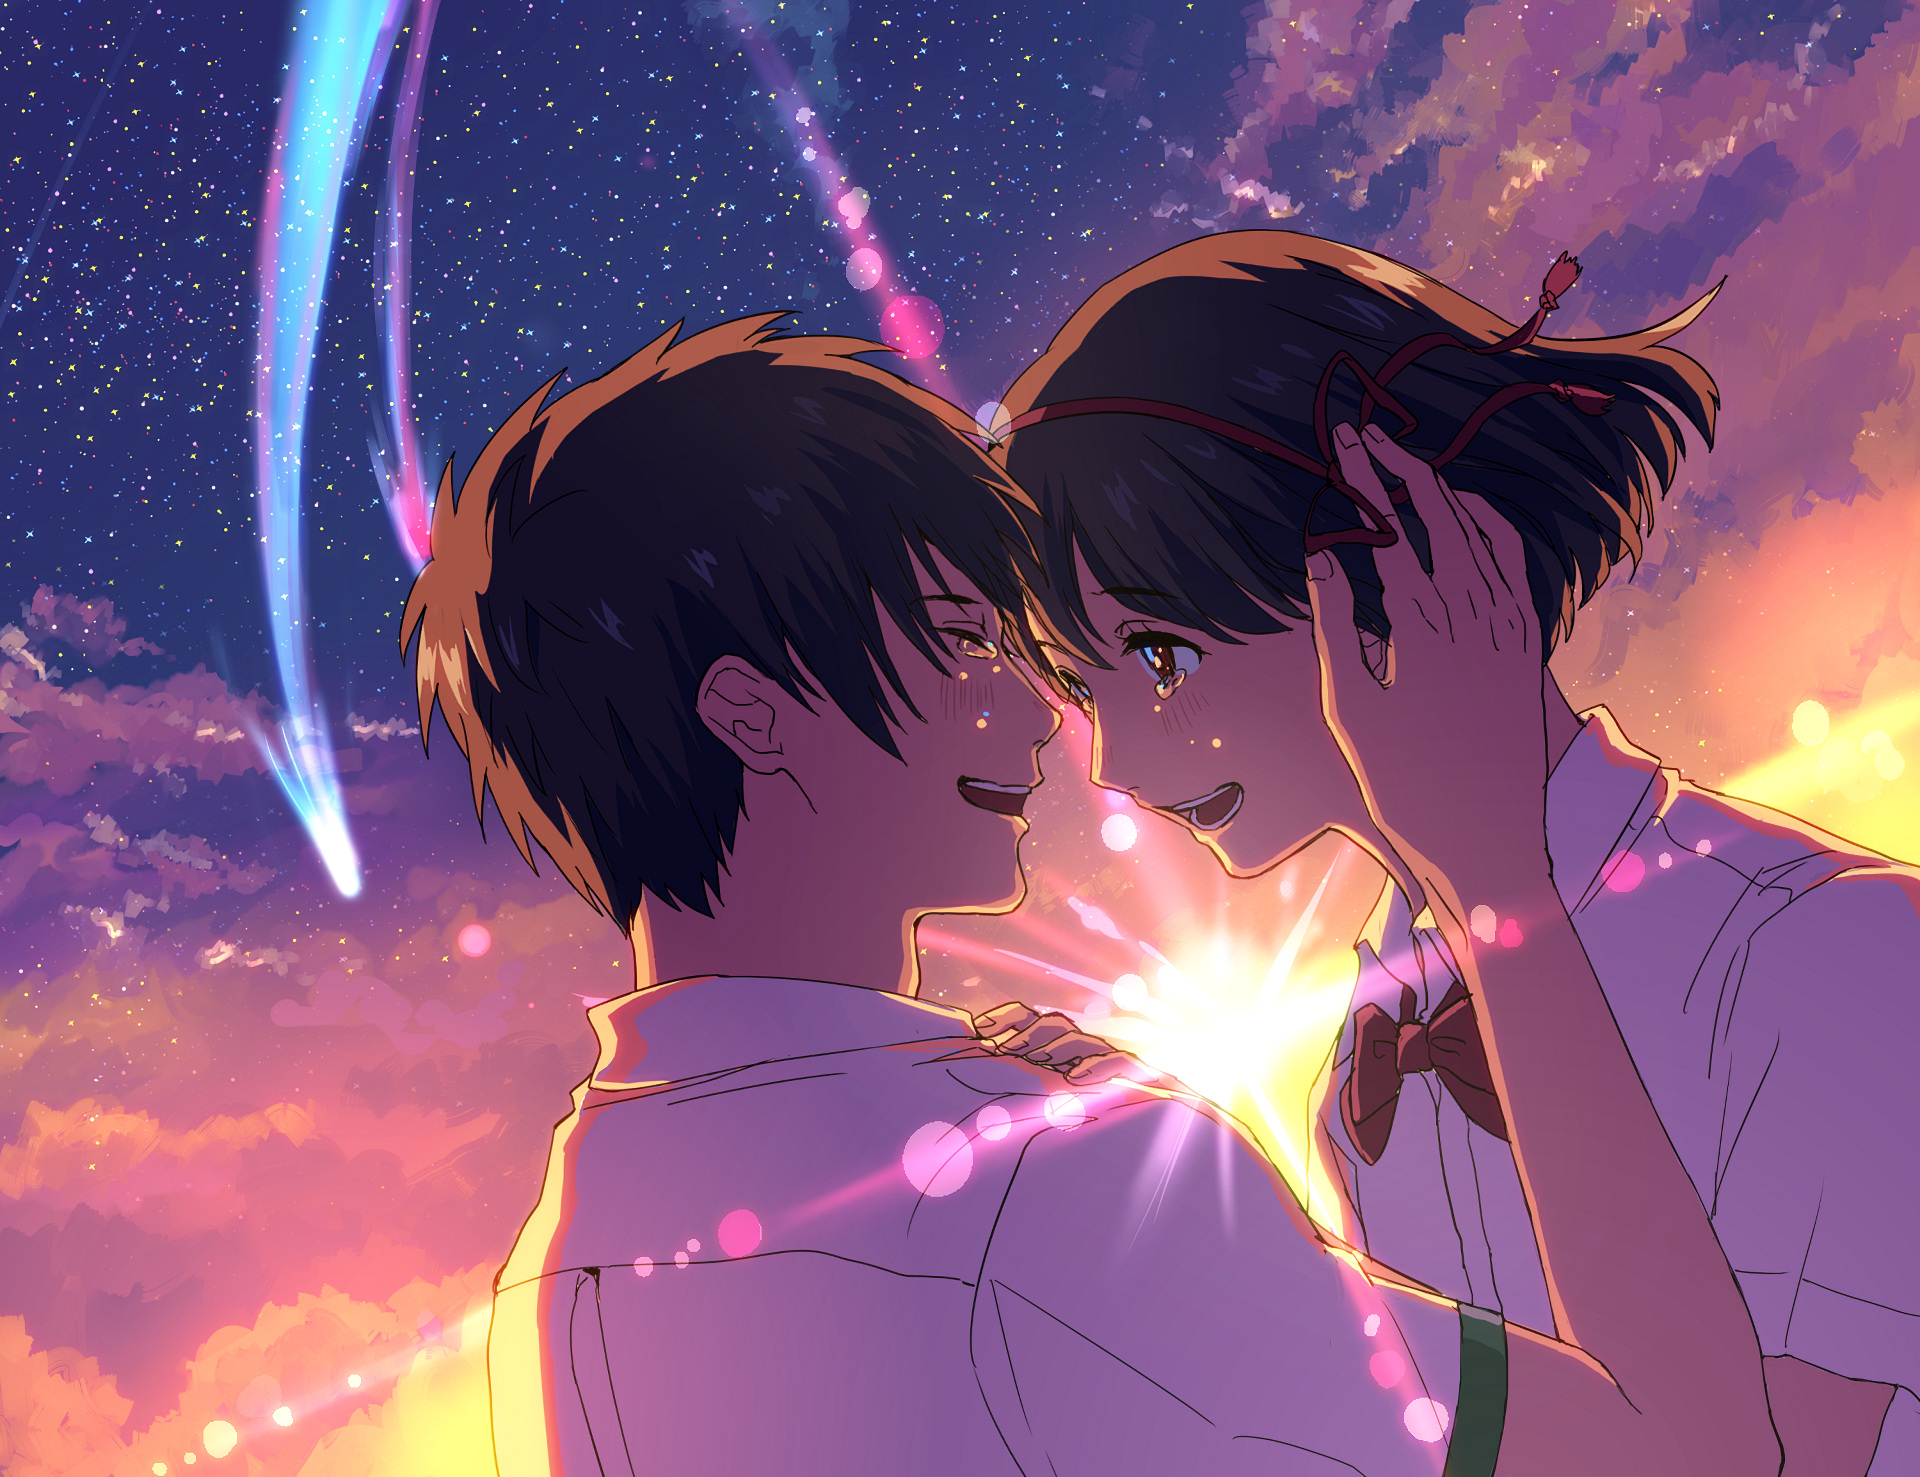 No Love Boy Wallpaper : Your Name. Full HD Wallpaper and Background Image ...